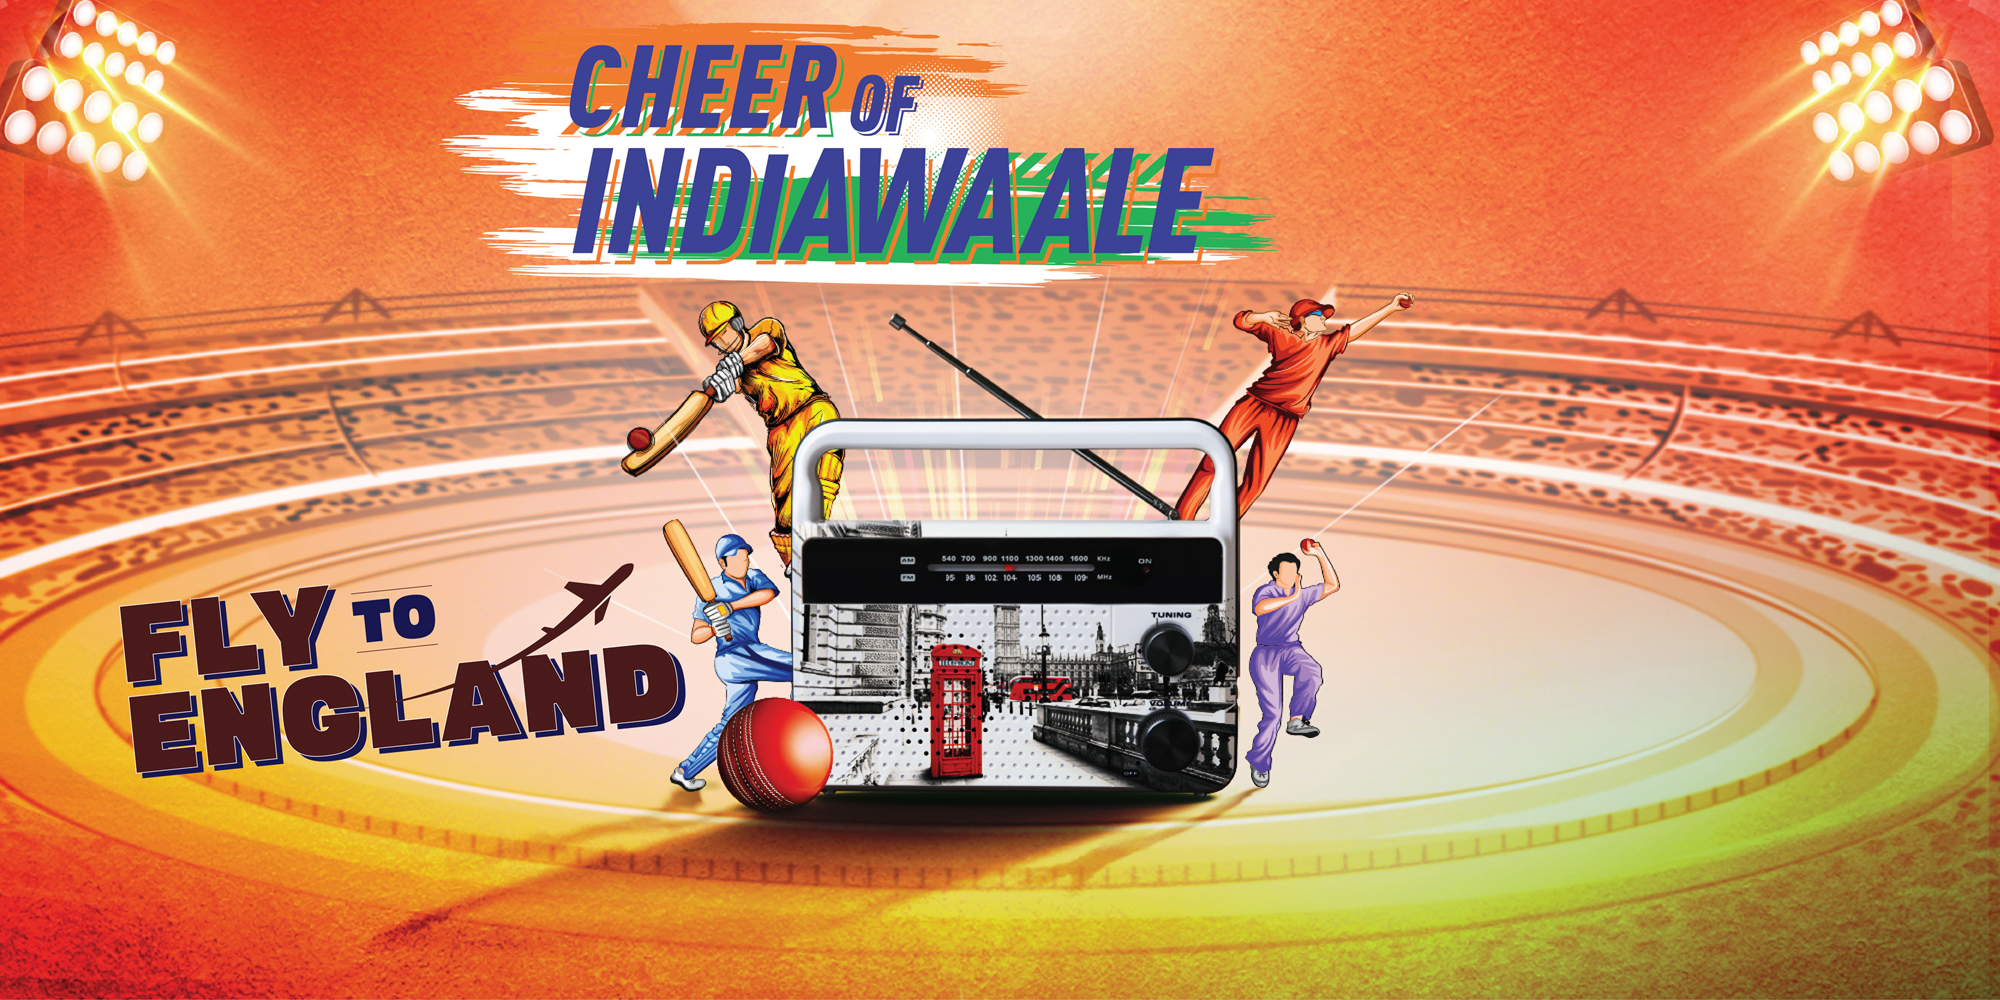 Cheer of Indiawaale Fly To England